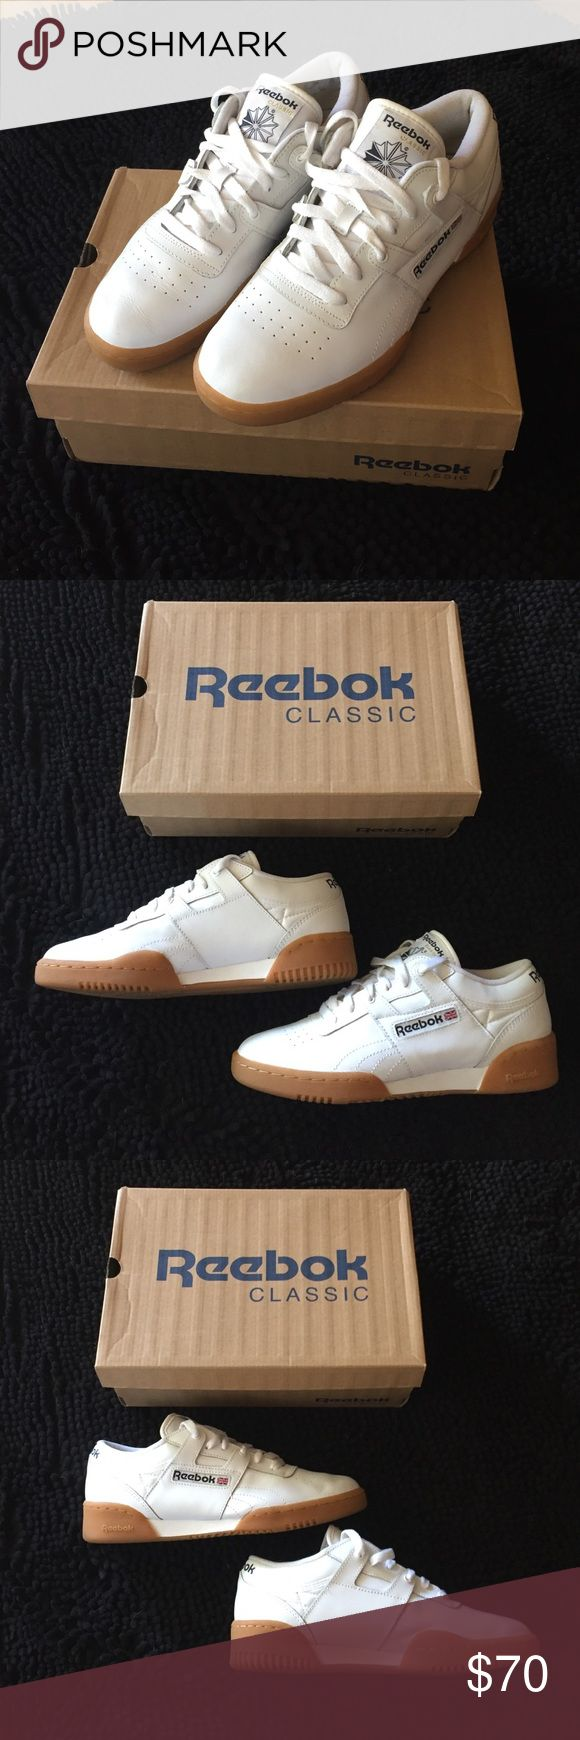 White Reebok Classic Workout Low Gum Sole M7 W 8.5 White Reebok Classic Workout Low with Gum Sole, Men's 7, Women's 8.5-9. Lightly worn, as I need a half size larger. With original box. LOVE these sneakers-- very European chic. Reebok Shoes Sneakers